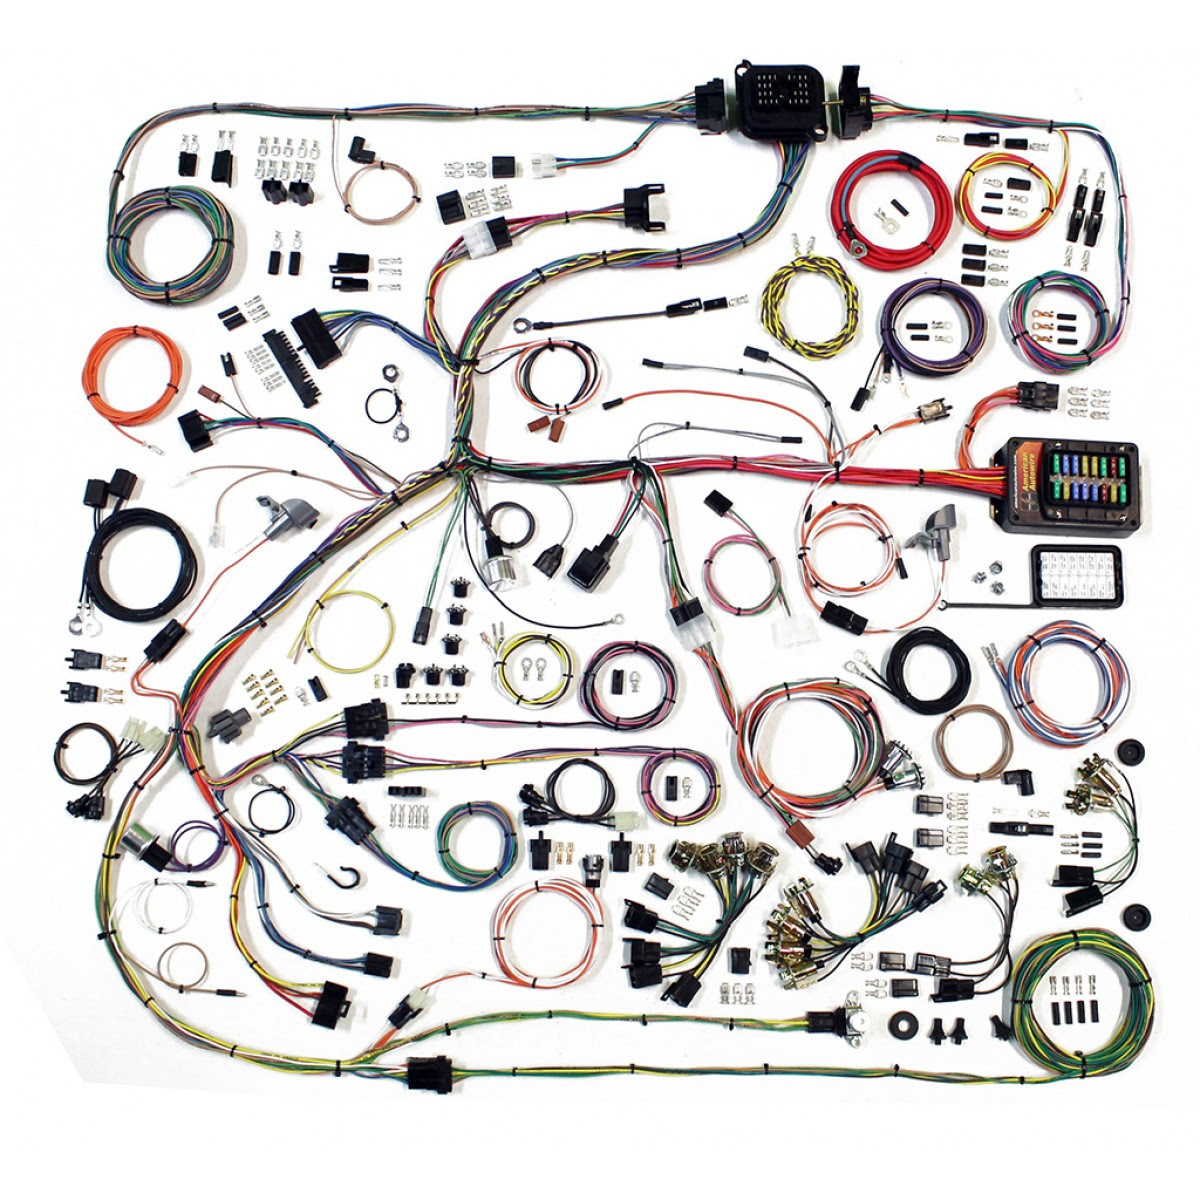 57808e6 1968 Plymouth Roadrunner Wiring Diagram Wiring Resources